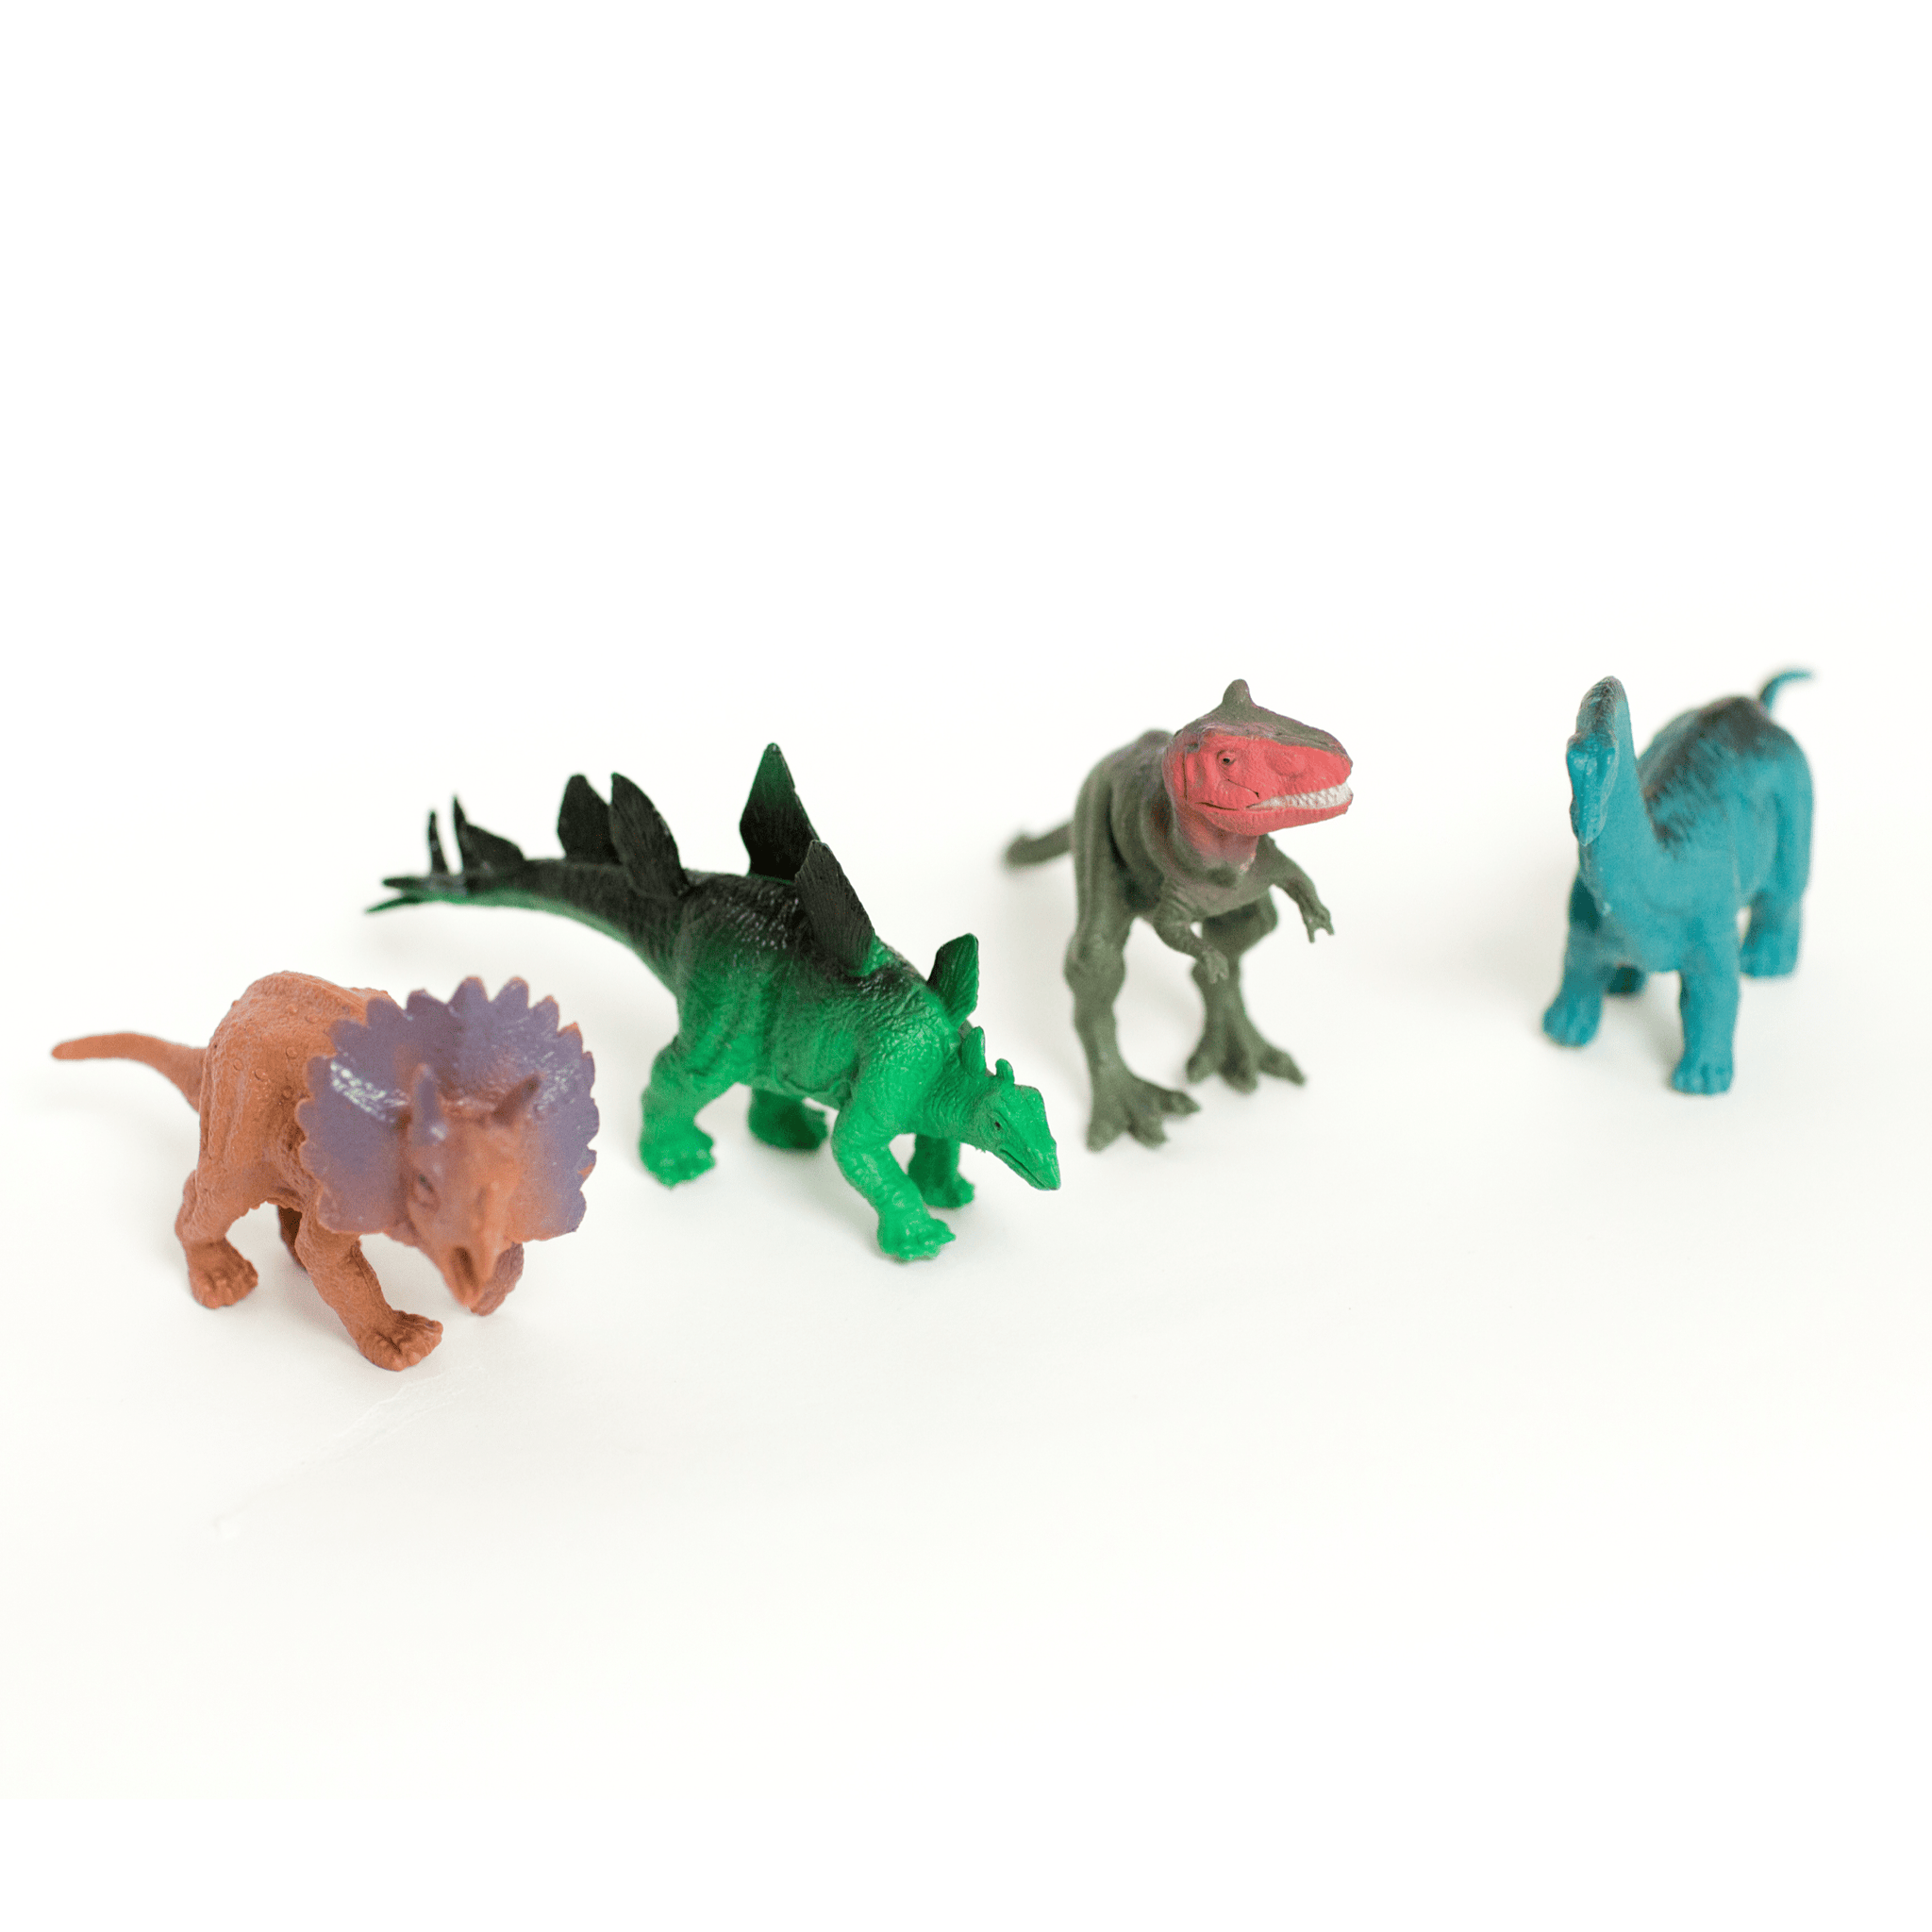 Dinosaur Toy Figures | Kids Toy Dinosaur Figures for Parties | Dinosaur Party Ideas